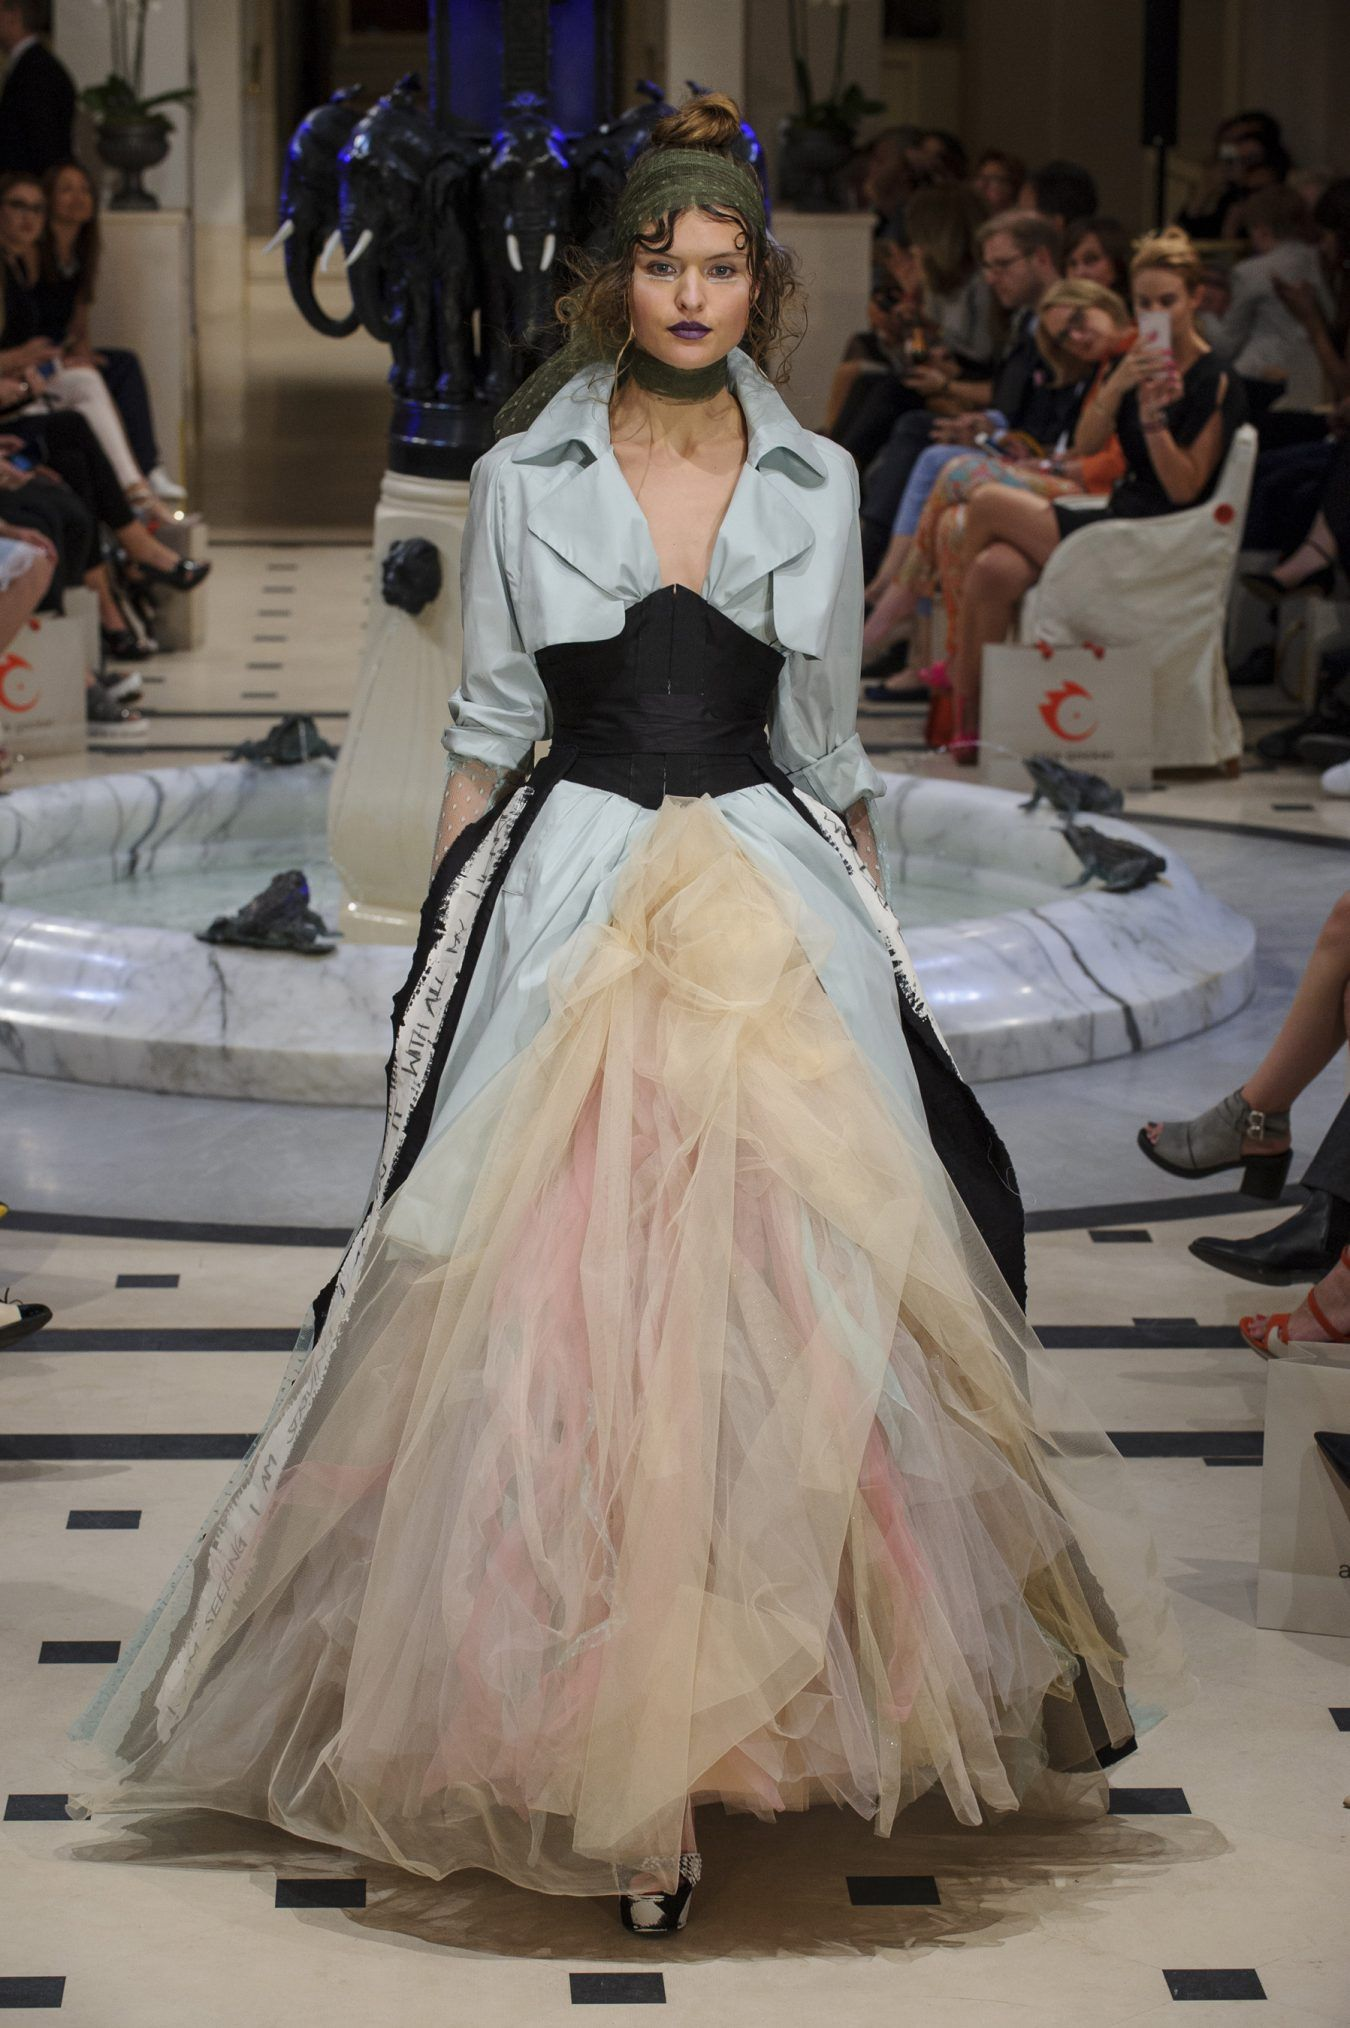 Anja gockel spring fashion show dress obsessed board